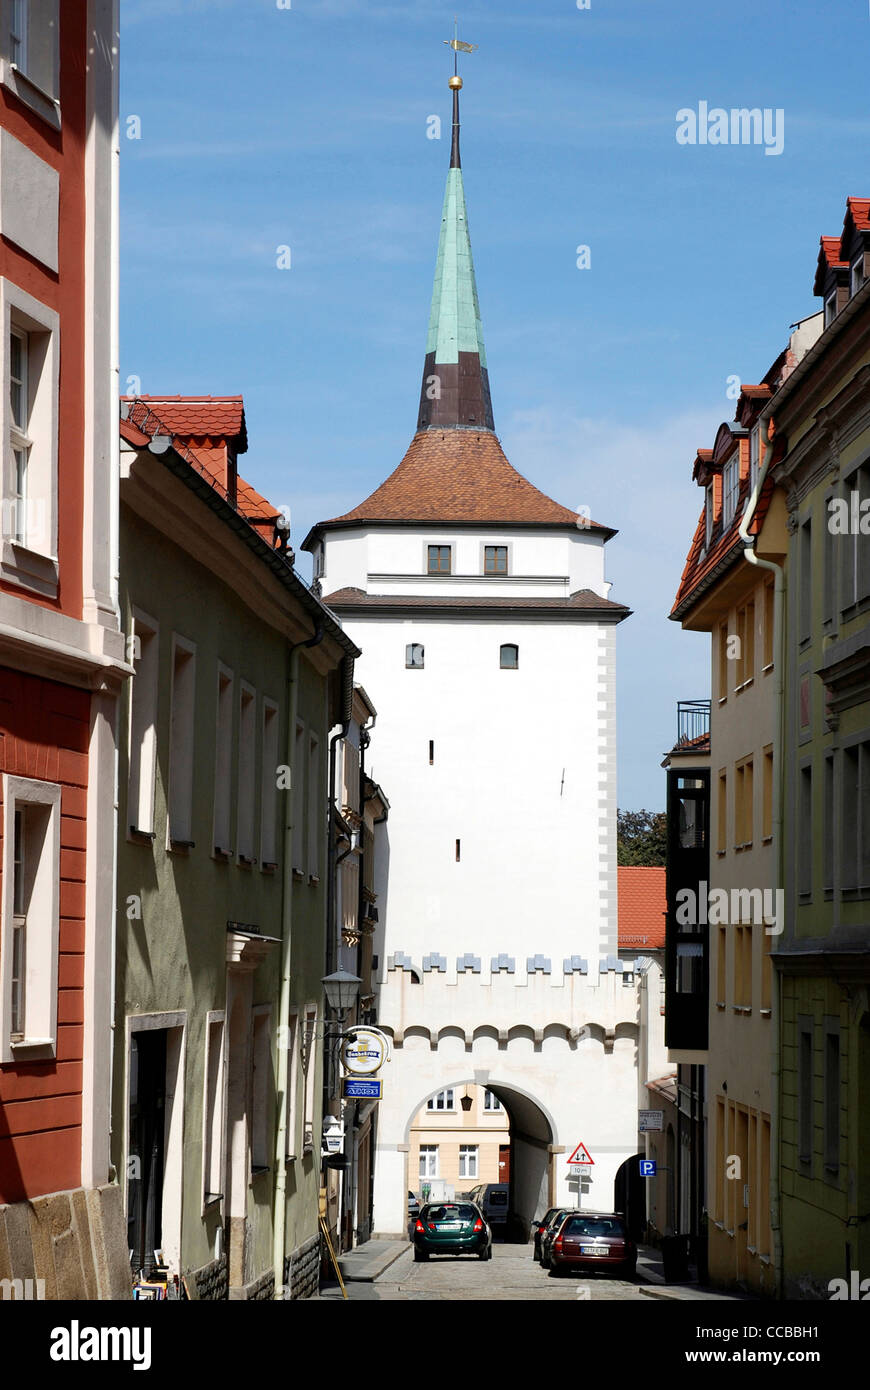 Tower Schuelerturm with the gate Schuelertor in the historical old town of Bautzen. - Stock Image